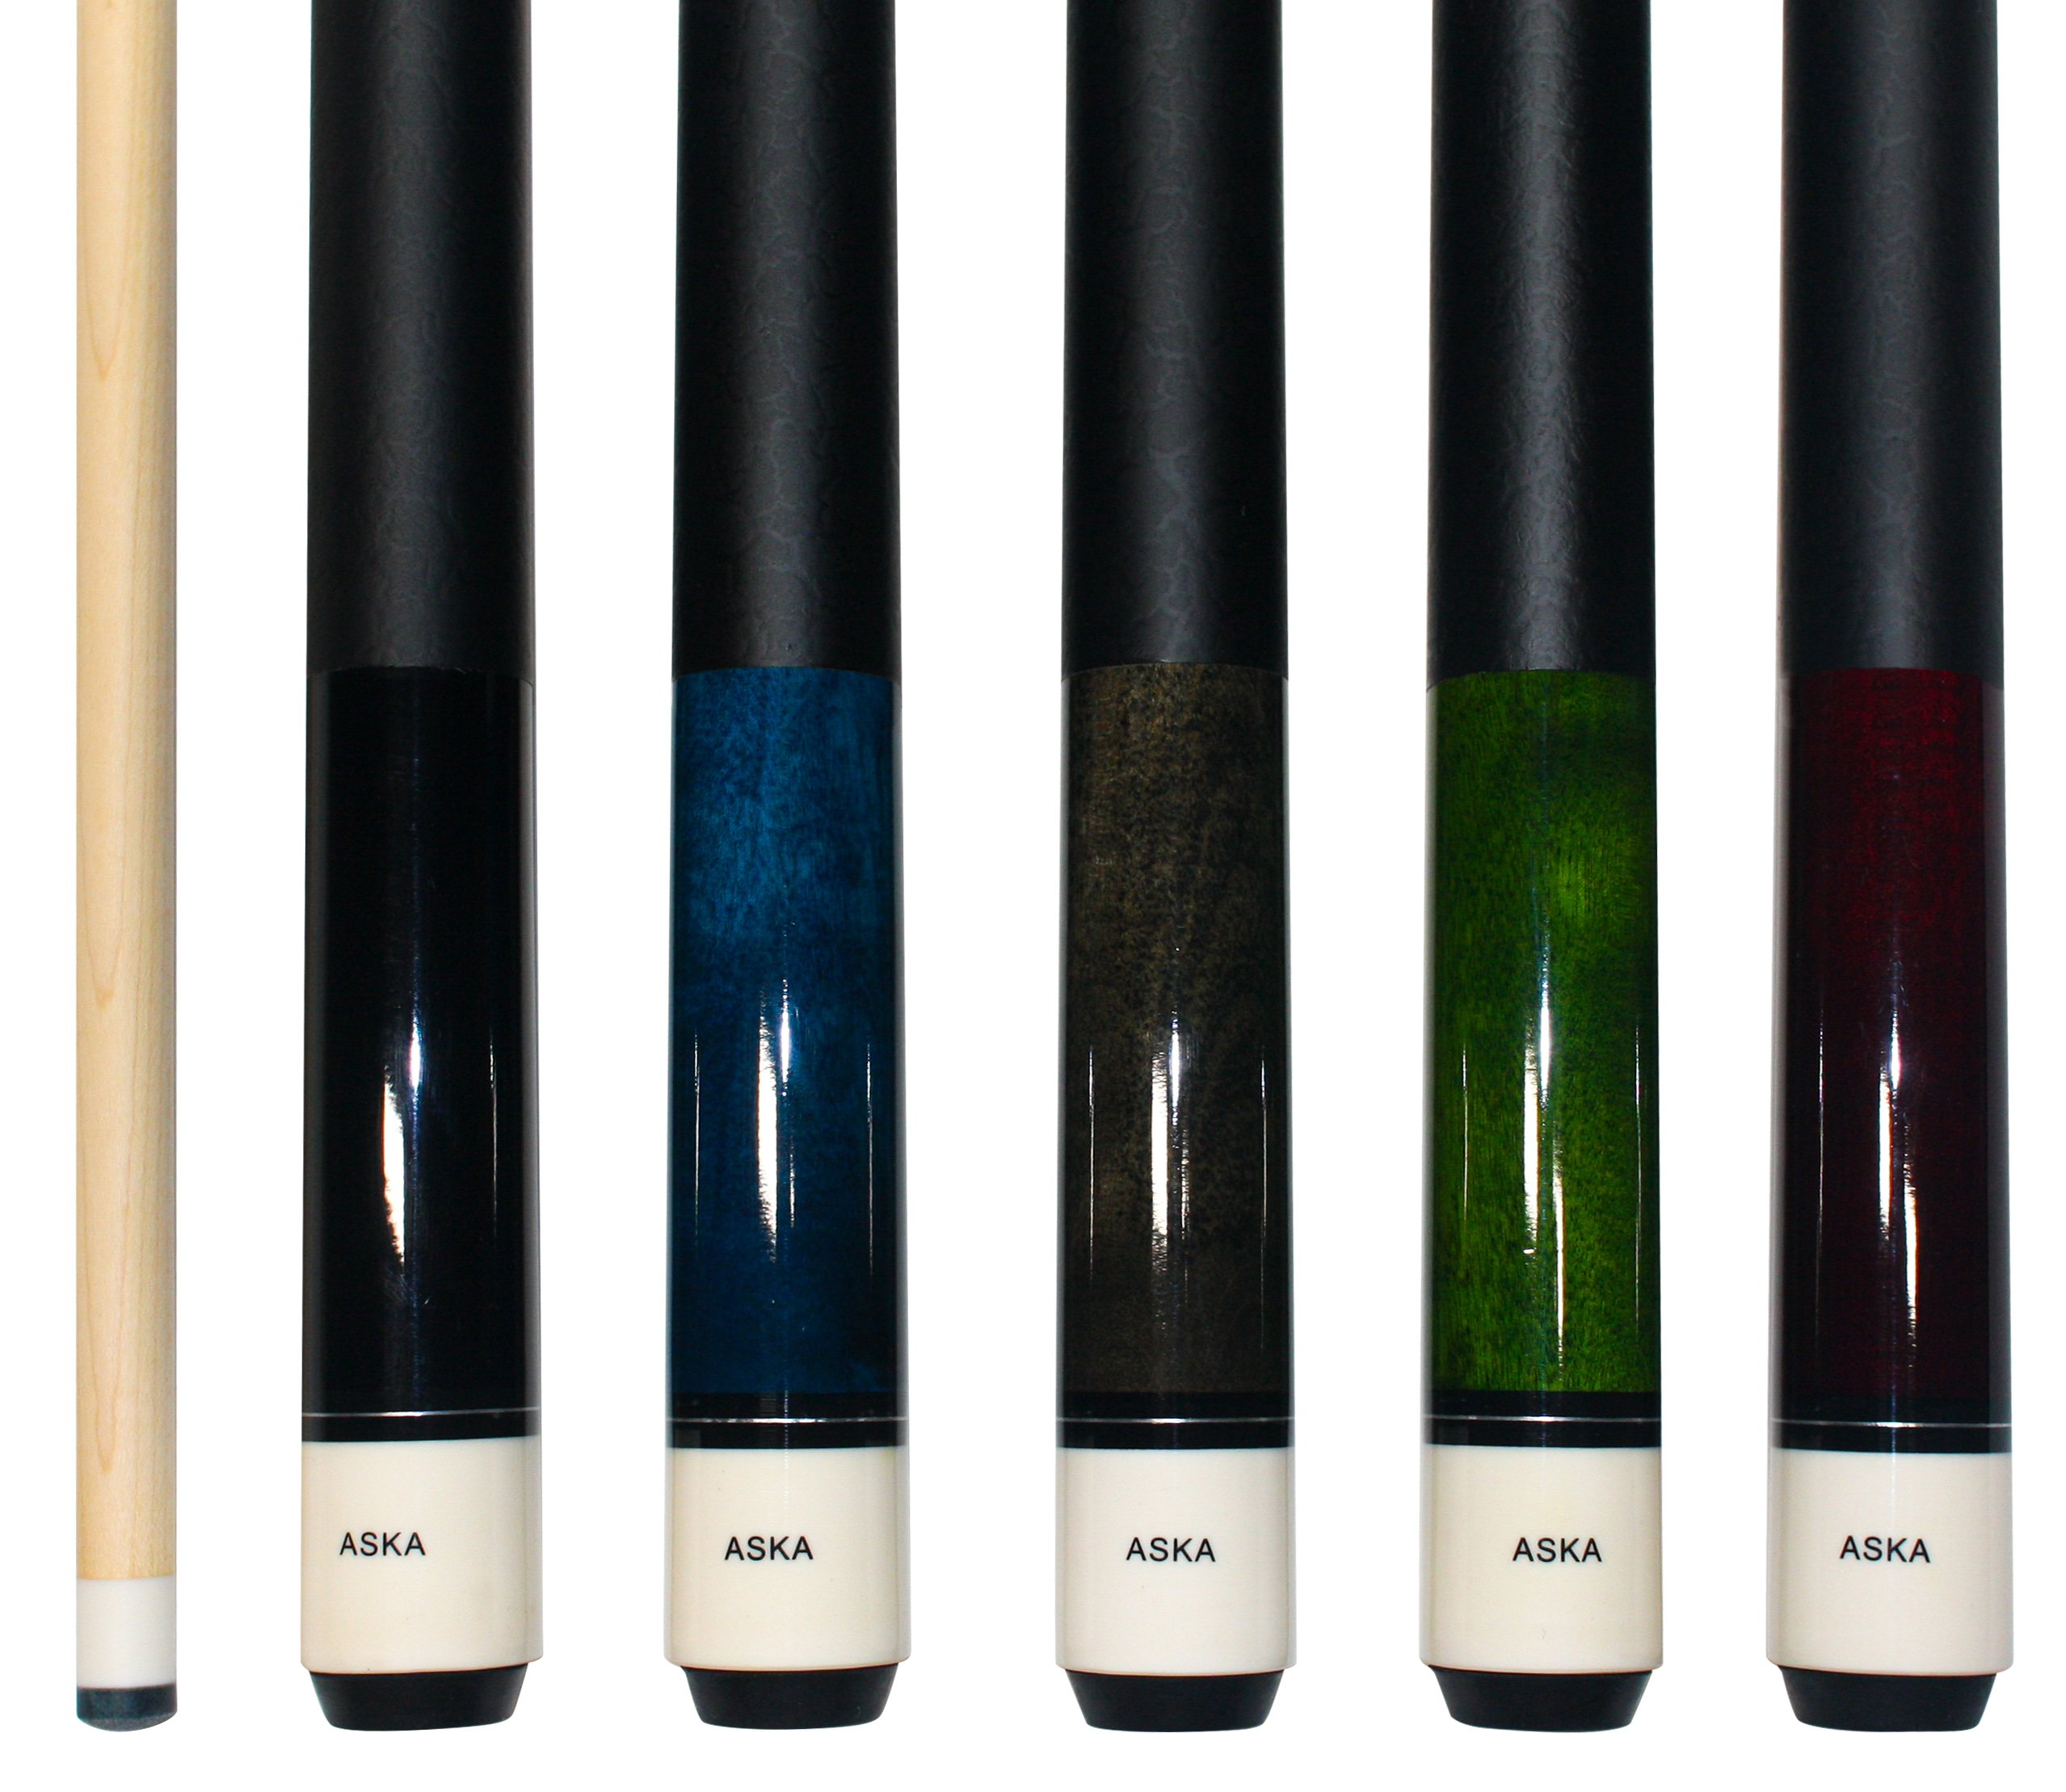 Set of 5 Aska L1 Billiard Pool Cues, 58'' Hard Rock Canadian Maple, 13mm Hard Le Pro Tip, Mixed Weights, Black, Blue, Grey, Green, Red. Perfect Quality. Improve Your Game Room